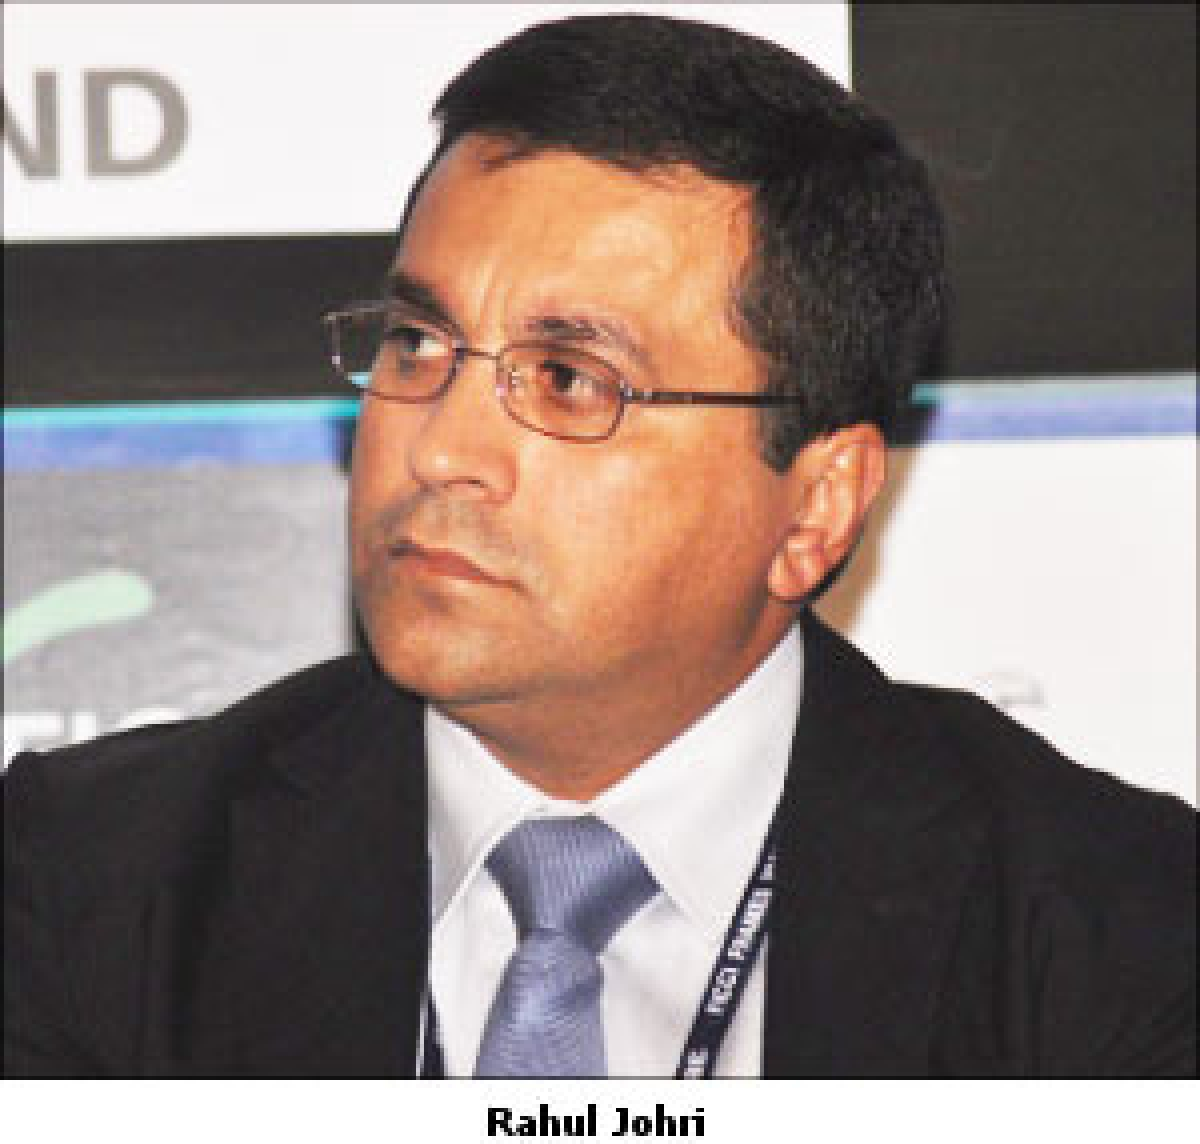 Rahul Johri resigns as EVP and GM of Discovery South Asia